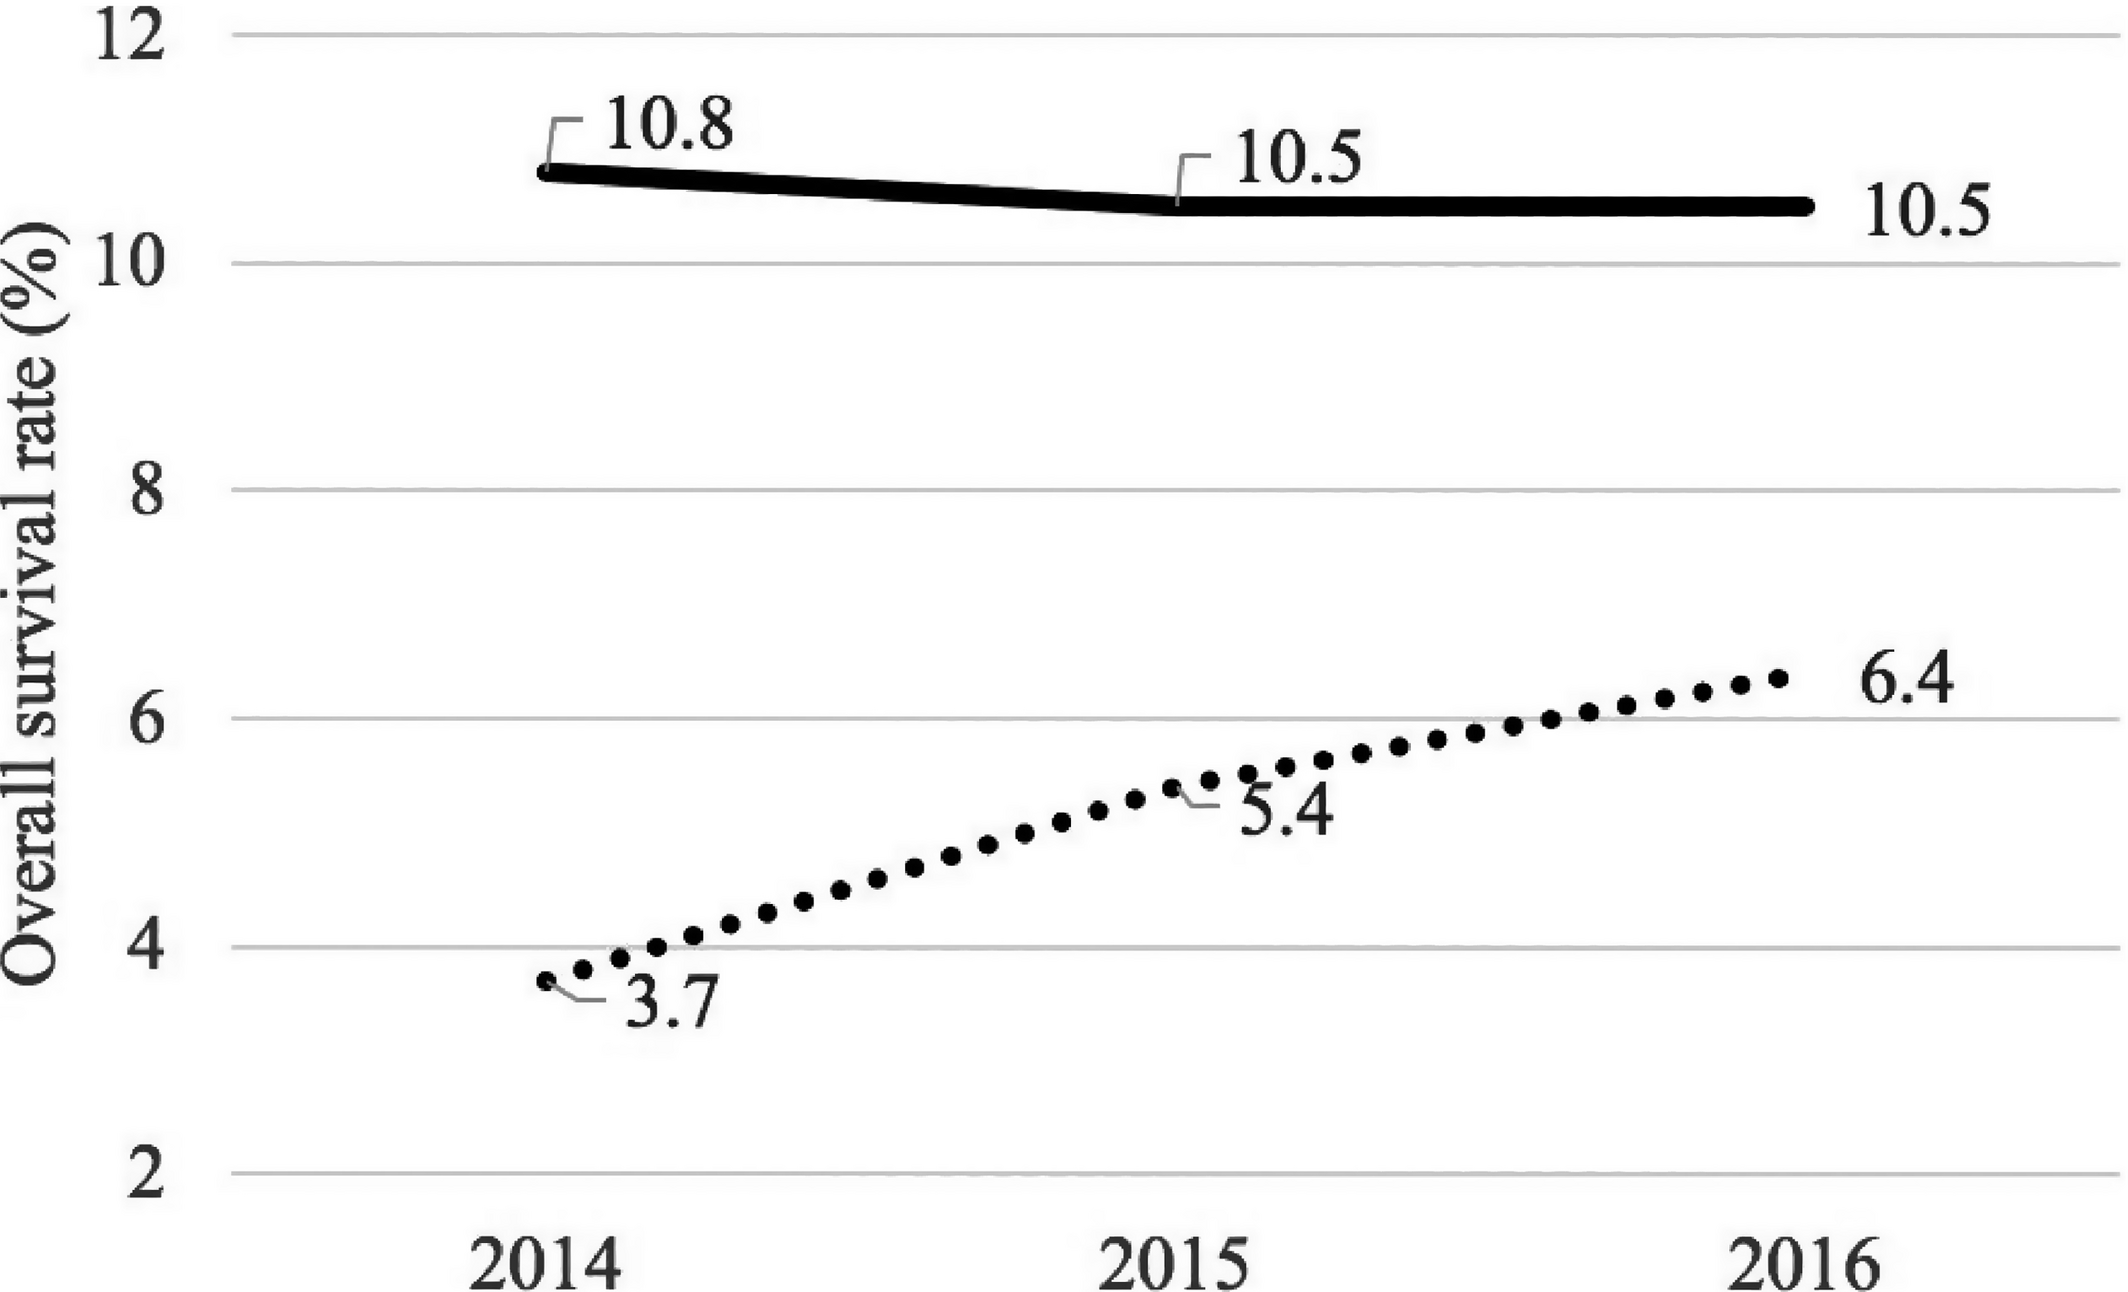 Improvement in Non‐Traumatic, Out‐Of‐Hospital Cardiac Arrest